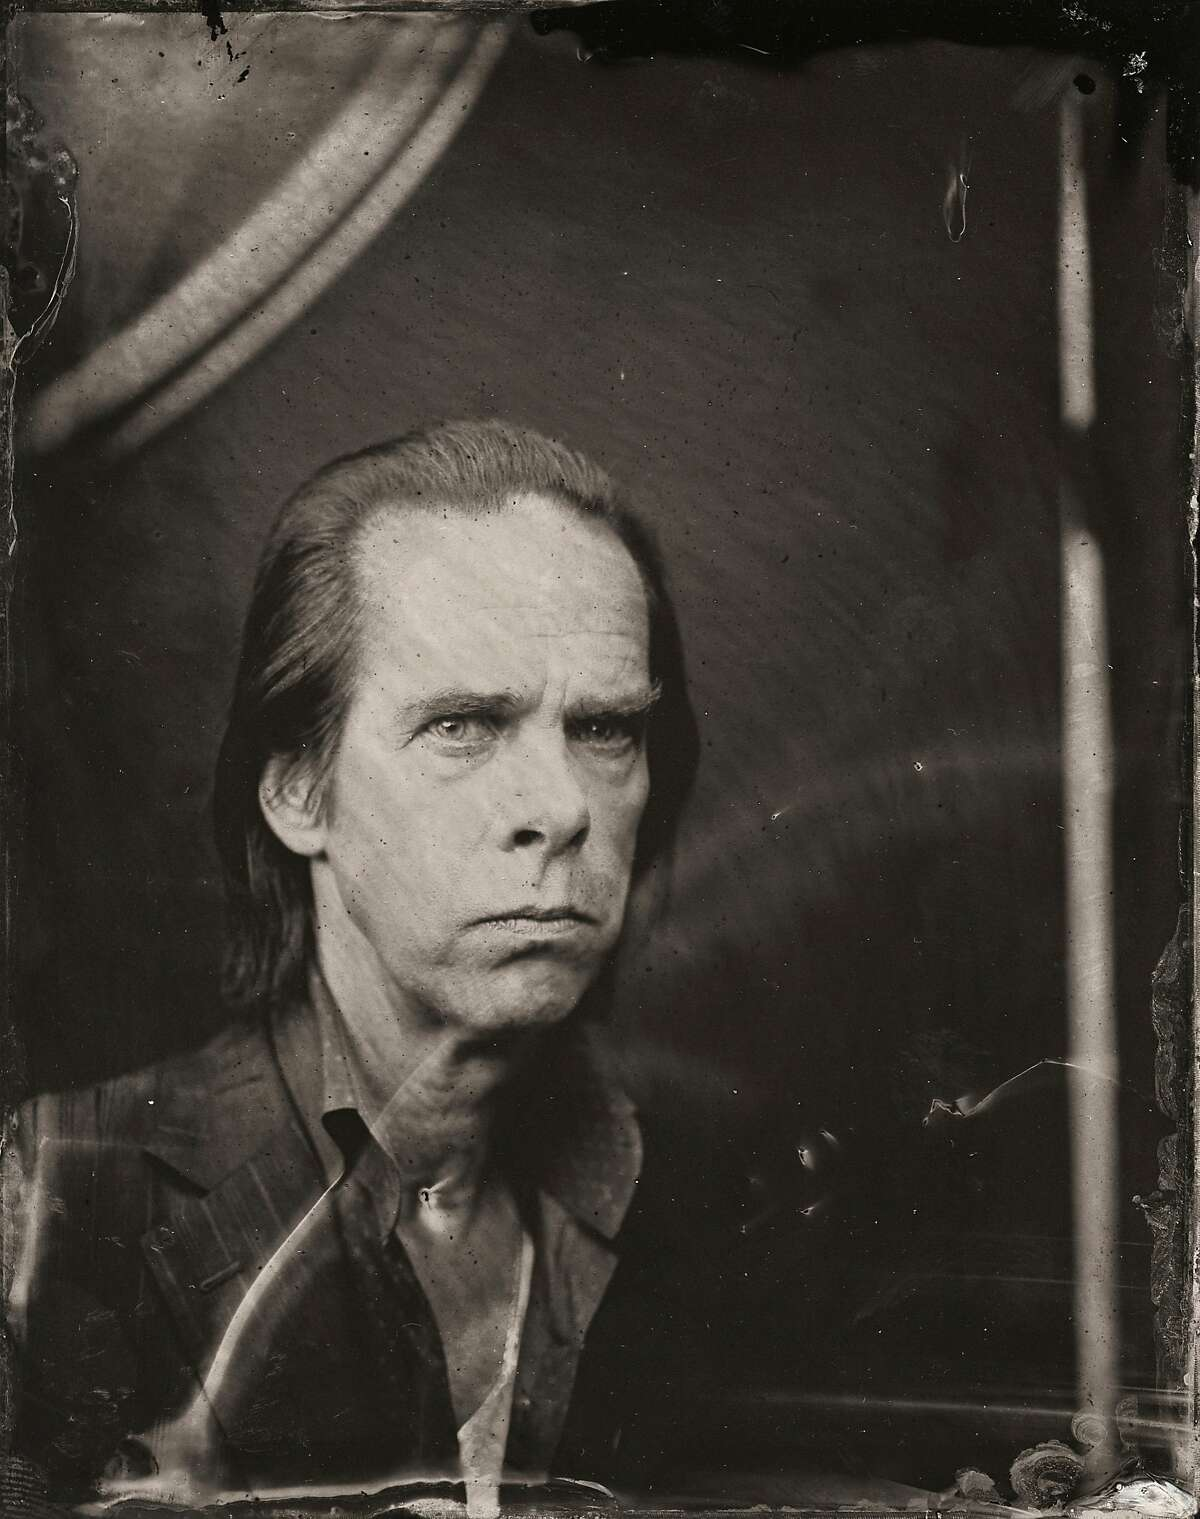 Nick Cave poses for a tintype (wet collodion) portrait at The Collective and Gibson Lounge Powered by CEG, during the 2014 Sundance Film Festival in Park City, Utah.